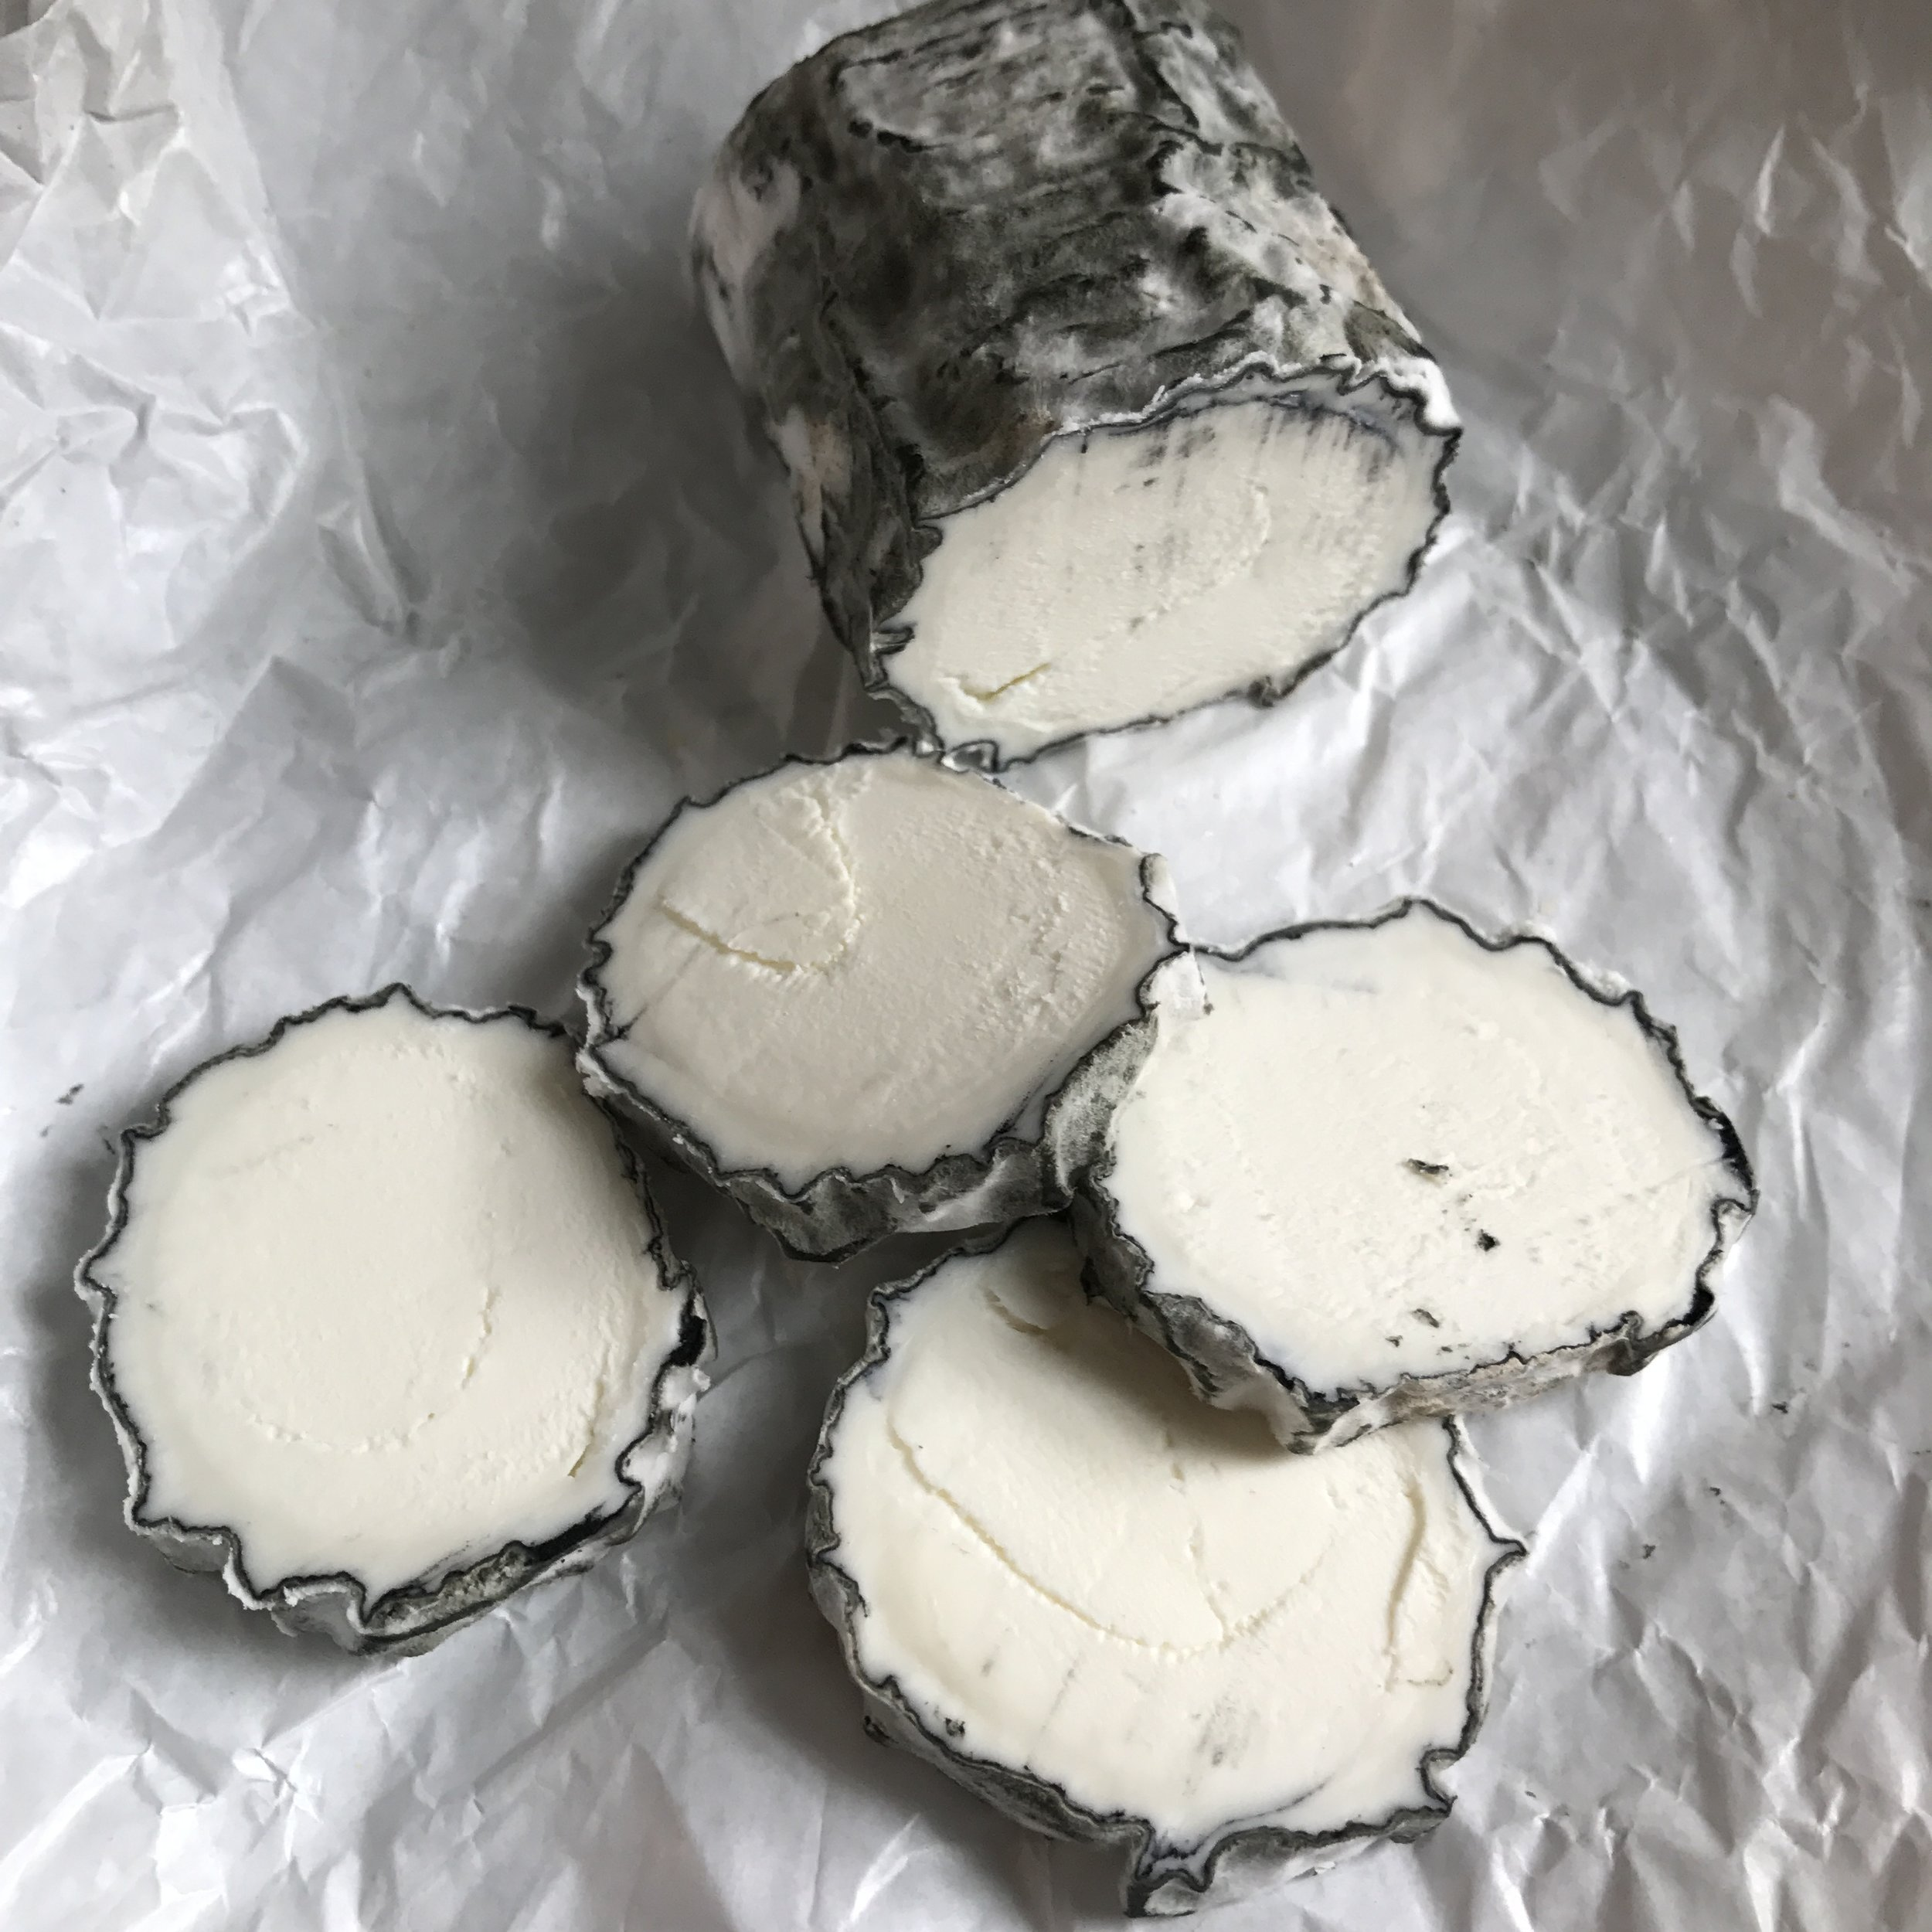 "Silver Lining - Silver Lining an elegant goat log with a mlld, slightly piquant, milky character, and a ganache-like paste. She is an aged, lactic, raw goat milk log with an ashed rind.  Silver Lining ages well for 4-7 weeks, and sometimes longer to achieve a dry or ""sec"" cheese. She is luscious anytime in her ripening process, as she becomes creamy with age. She's a classic!"